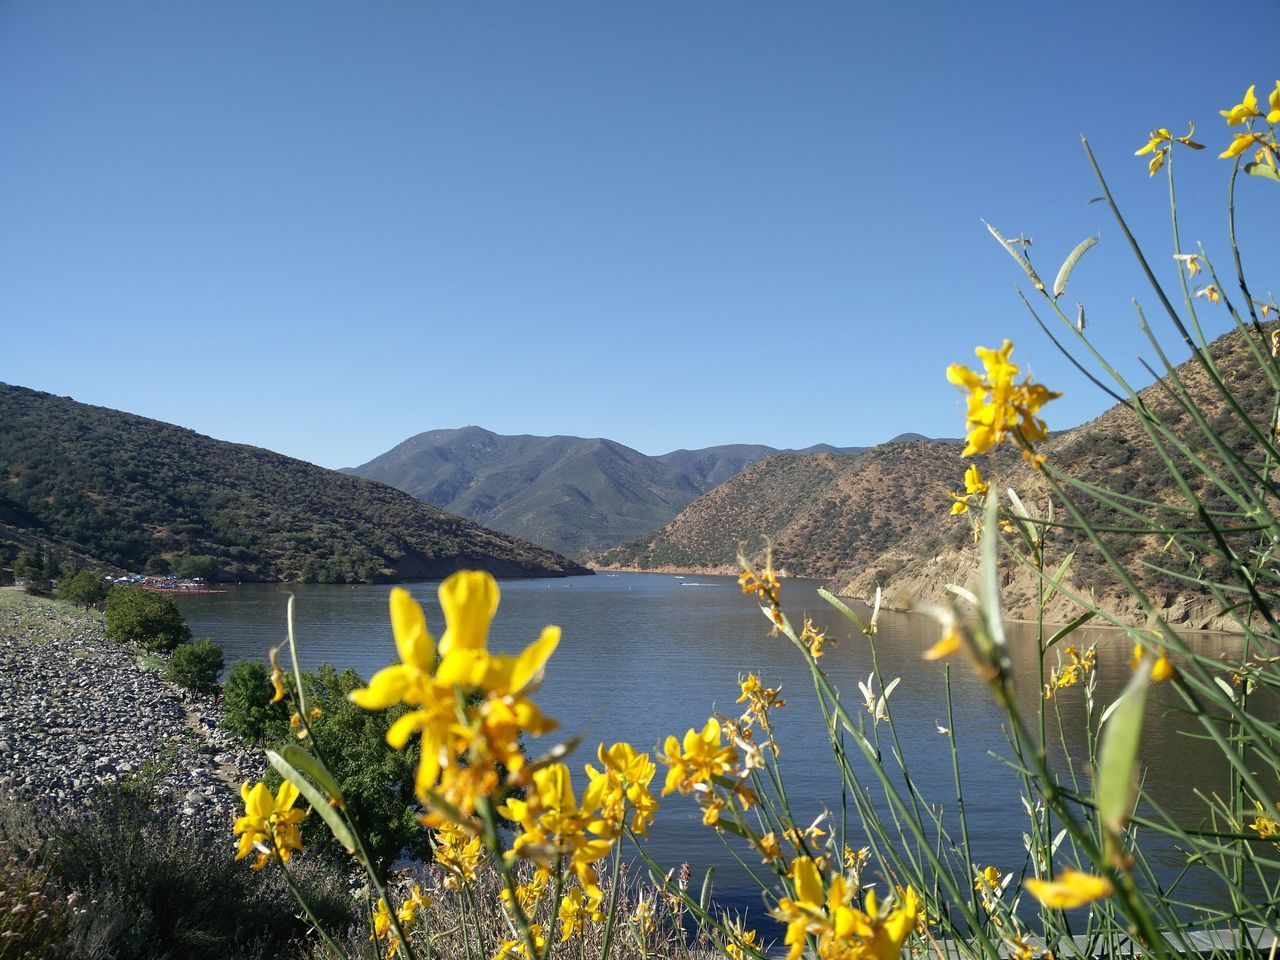 Pyramid Lake Flower Plant Yellow Wildflower Beauty In Nature No People Fragility Mountain Clear Sky Landscape Nature Taking Photos ❤ Outdoors Growth Lakeview EyeEm Best Shots - Nature